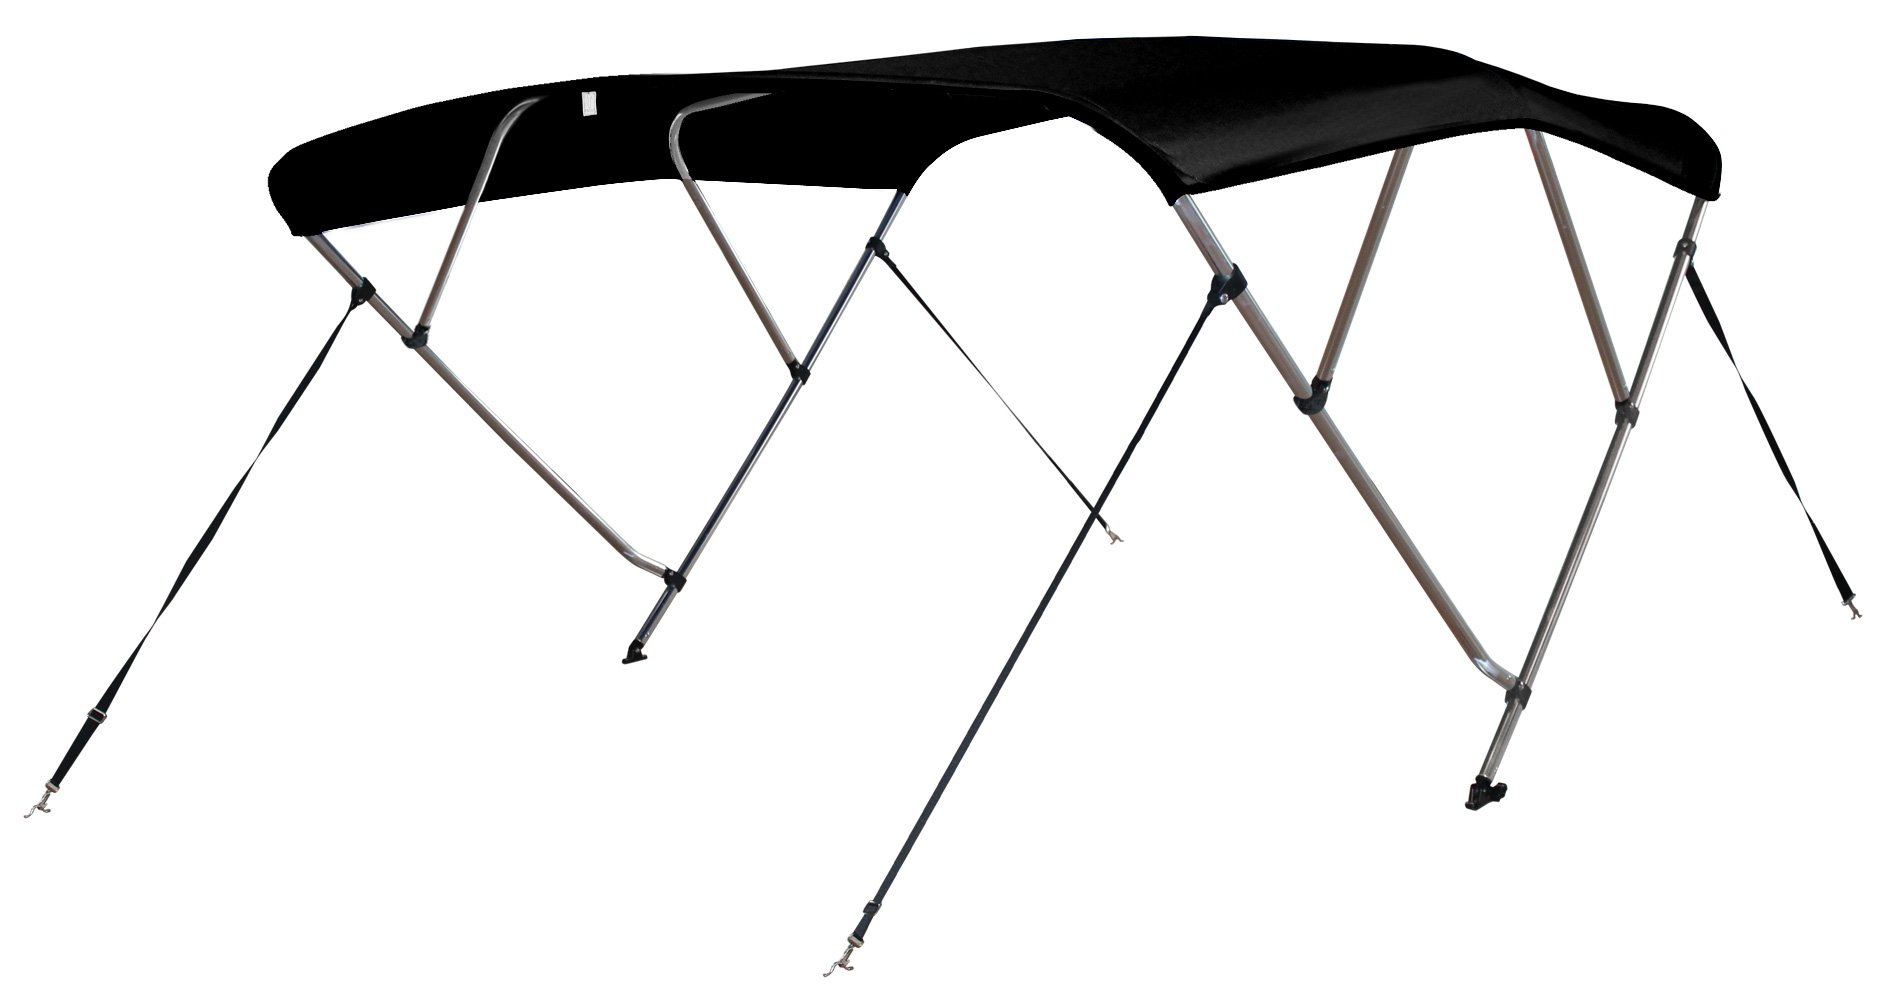 Leader Accessories 4 Bow Bimini Tops Boat Cover 4 Straps for Front and Rear Includes Hardwares with 1 Inch Aluminum Frame (Black, 8'L x 54'' H x 54''-60'' W) by Leader Accessories